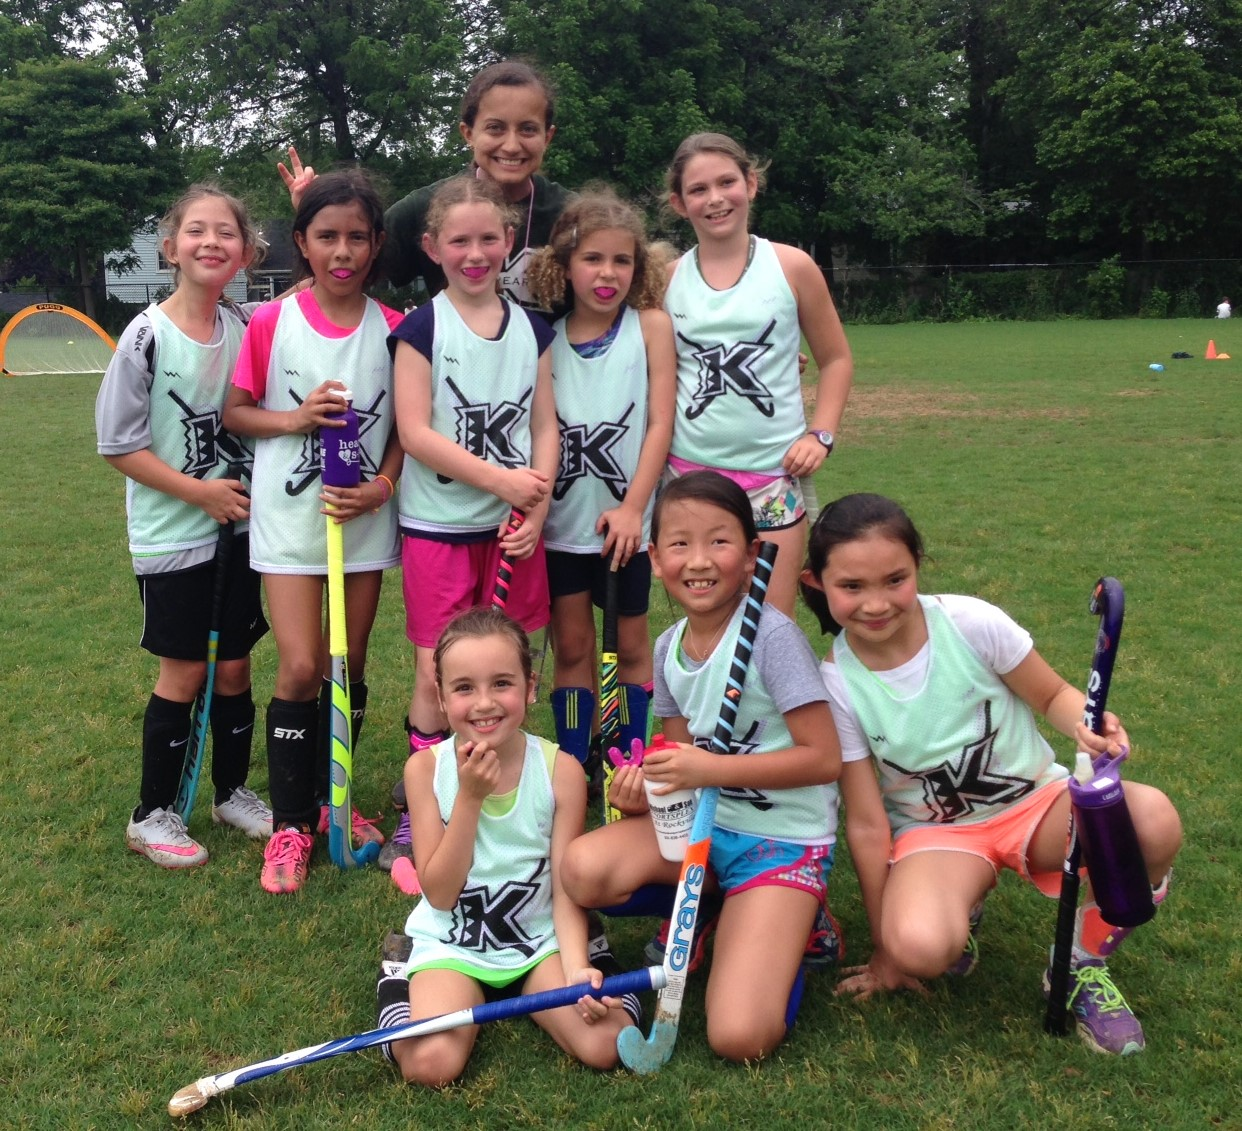 Basketball Camps Clinics Denver Youth Sports: Germantown Field Hockey Clinics And Camps